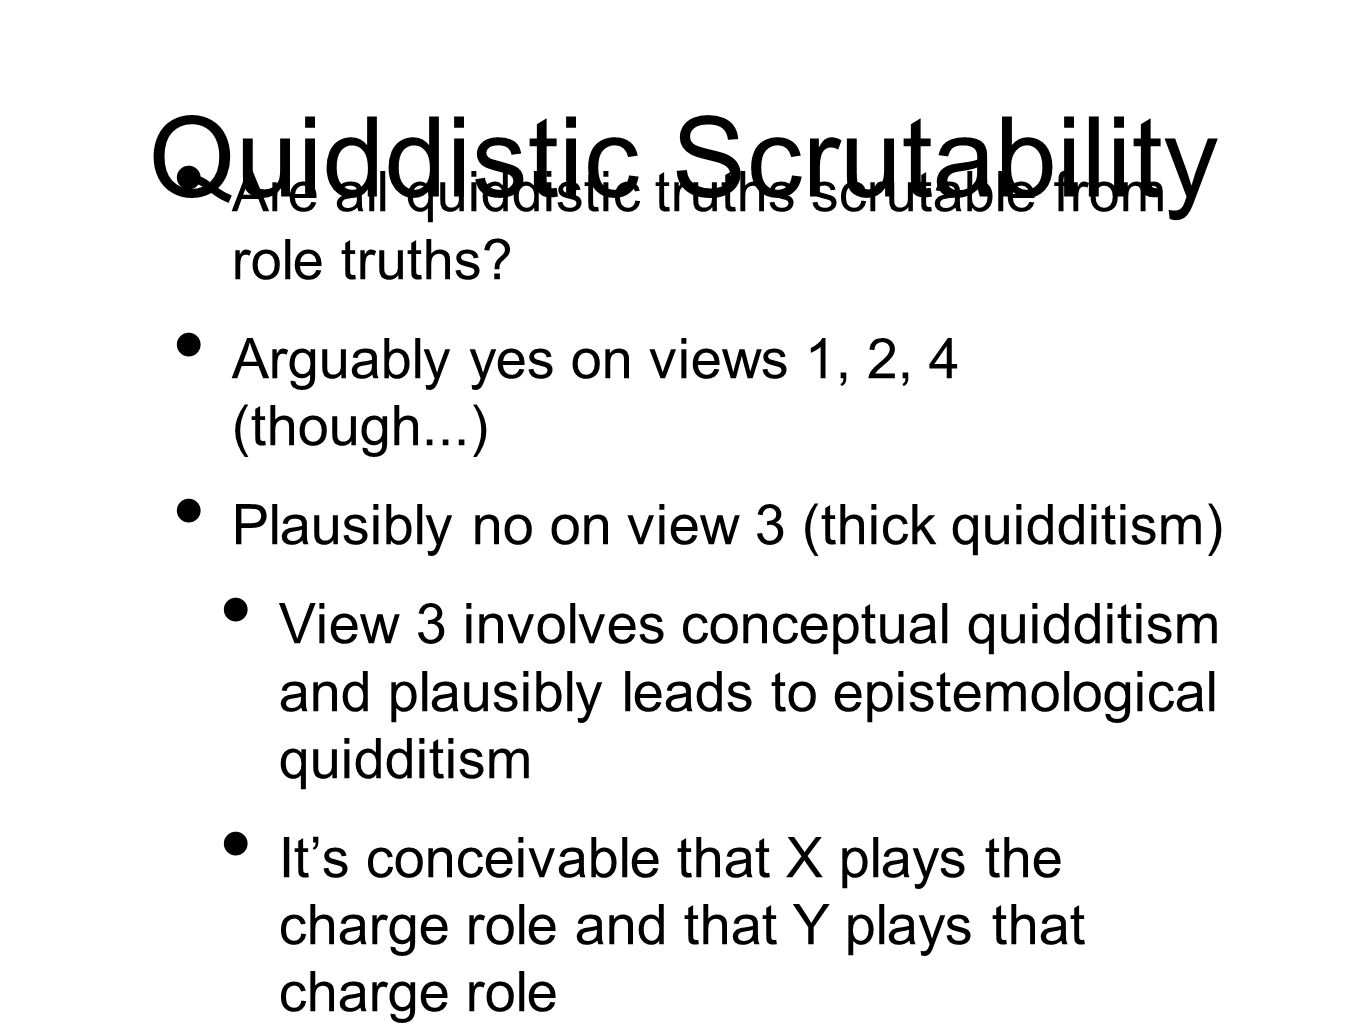 Quiddistic Scrutability Are all quiddistic truths scrutable from role truths? Arguably yes on views 1, 2, 4 (though...) Plausibly no on view 3 (thick